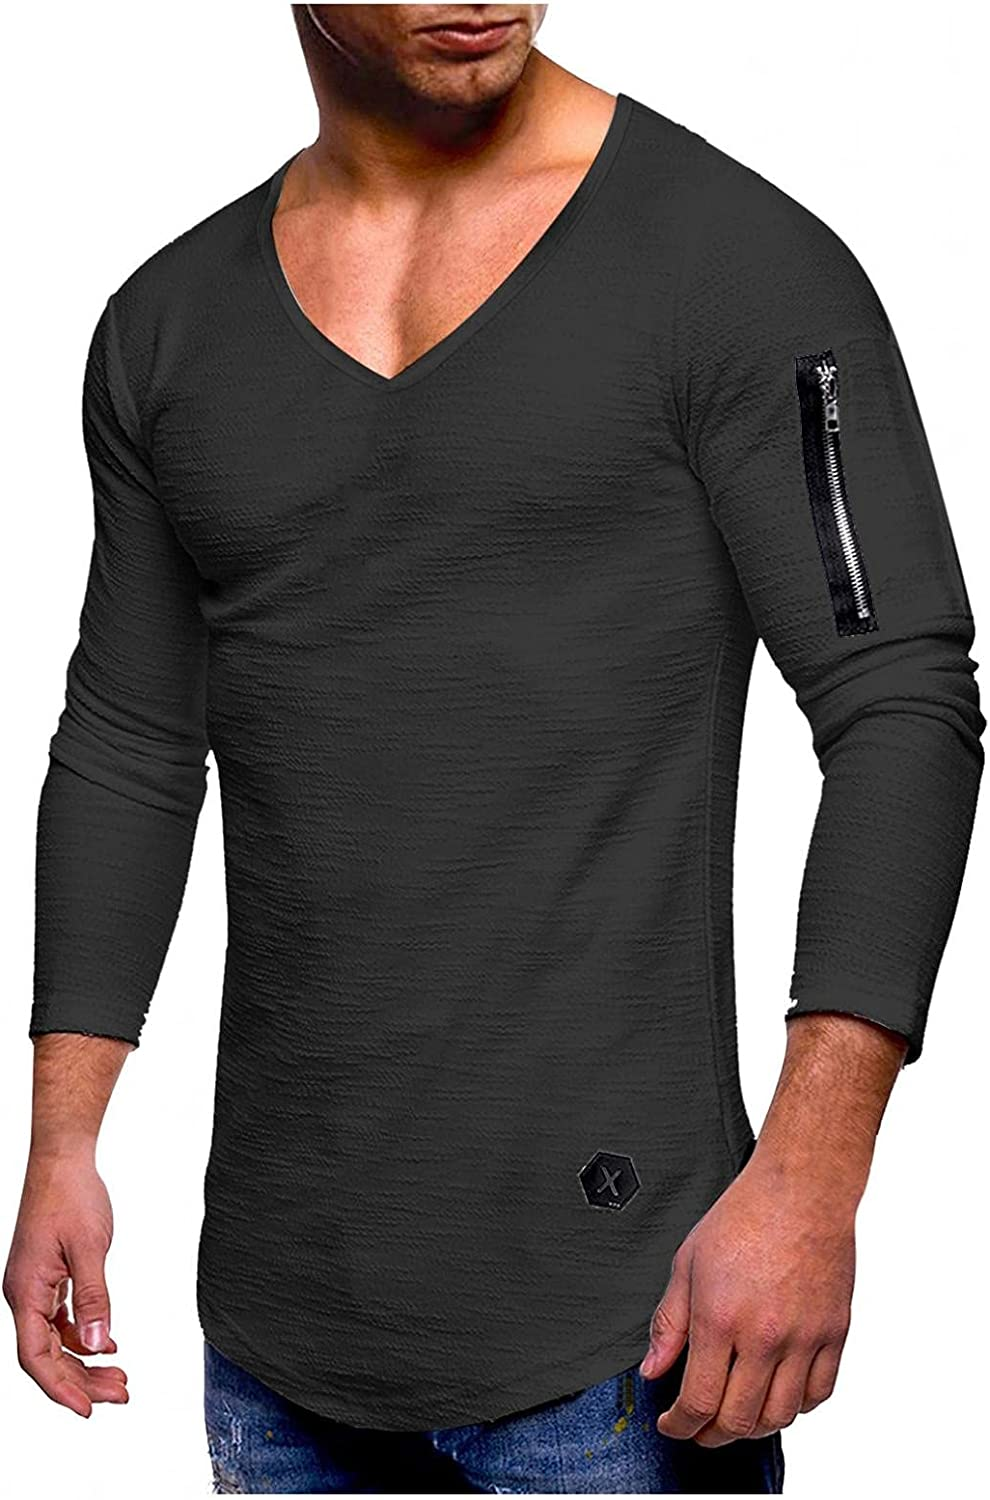 Huangse Men's Long Sleeve Tee Shirt Solid Color Slim Fit Casual V Neck T Shirts Novelty Street Sleeve Side Zipper Tee Shirts